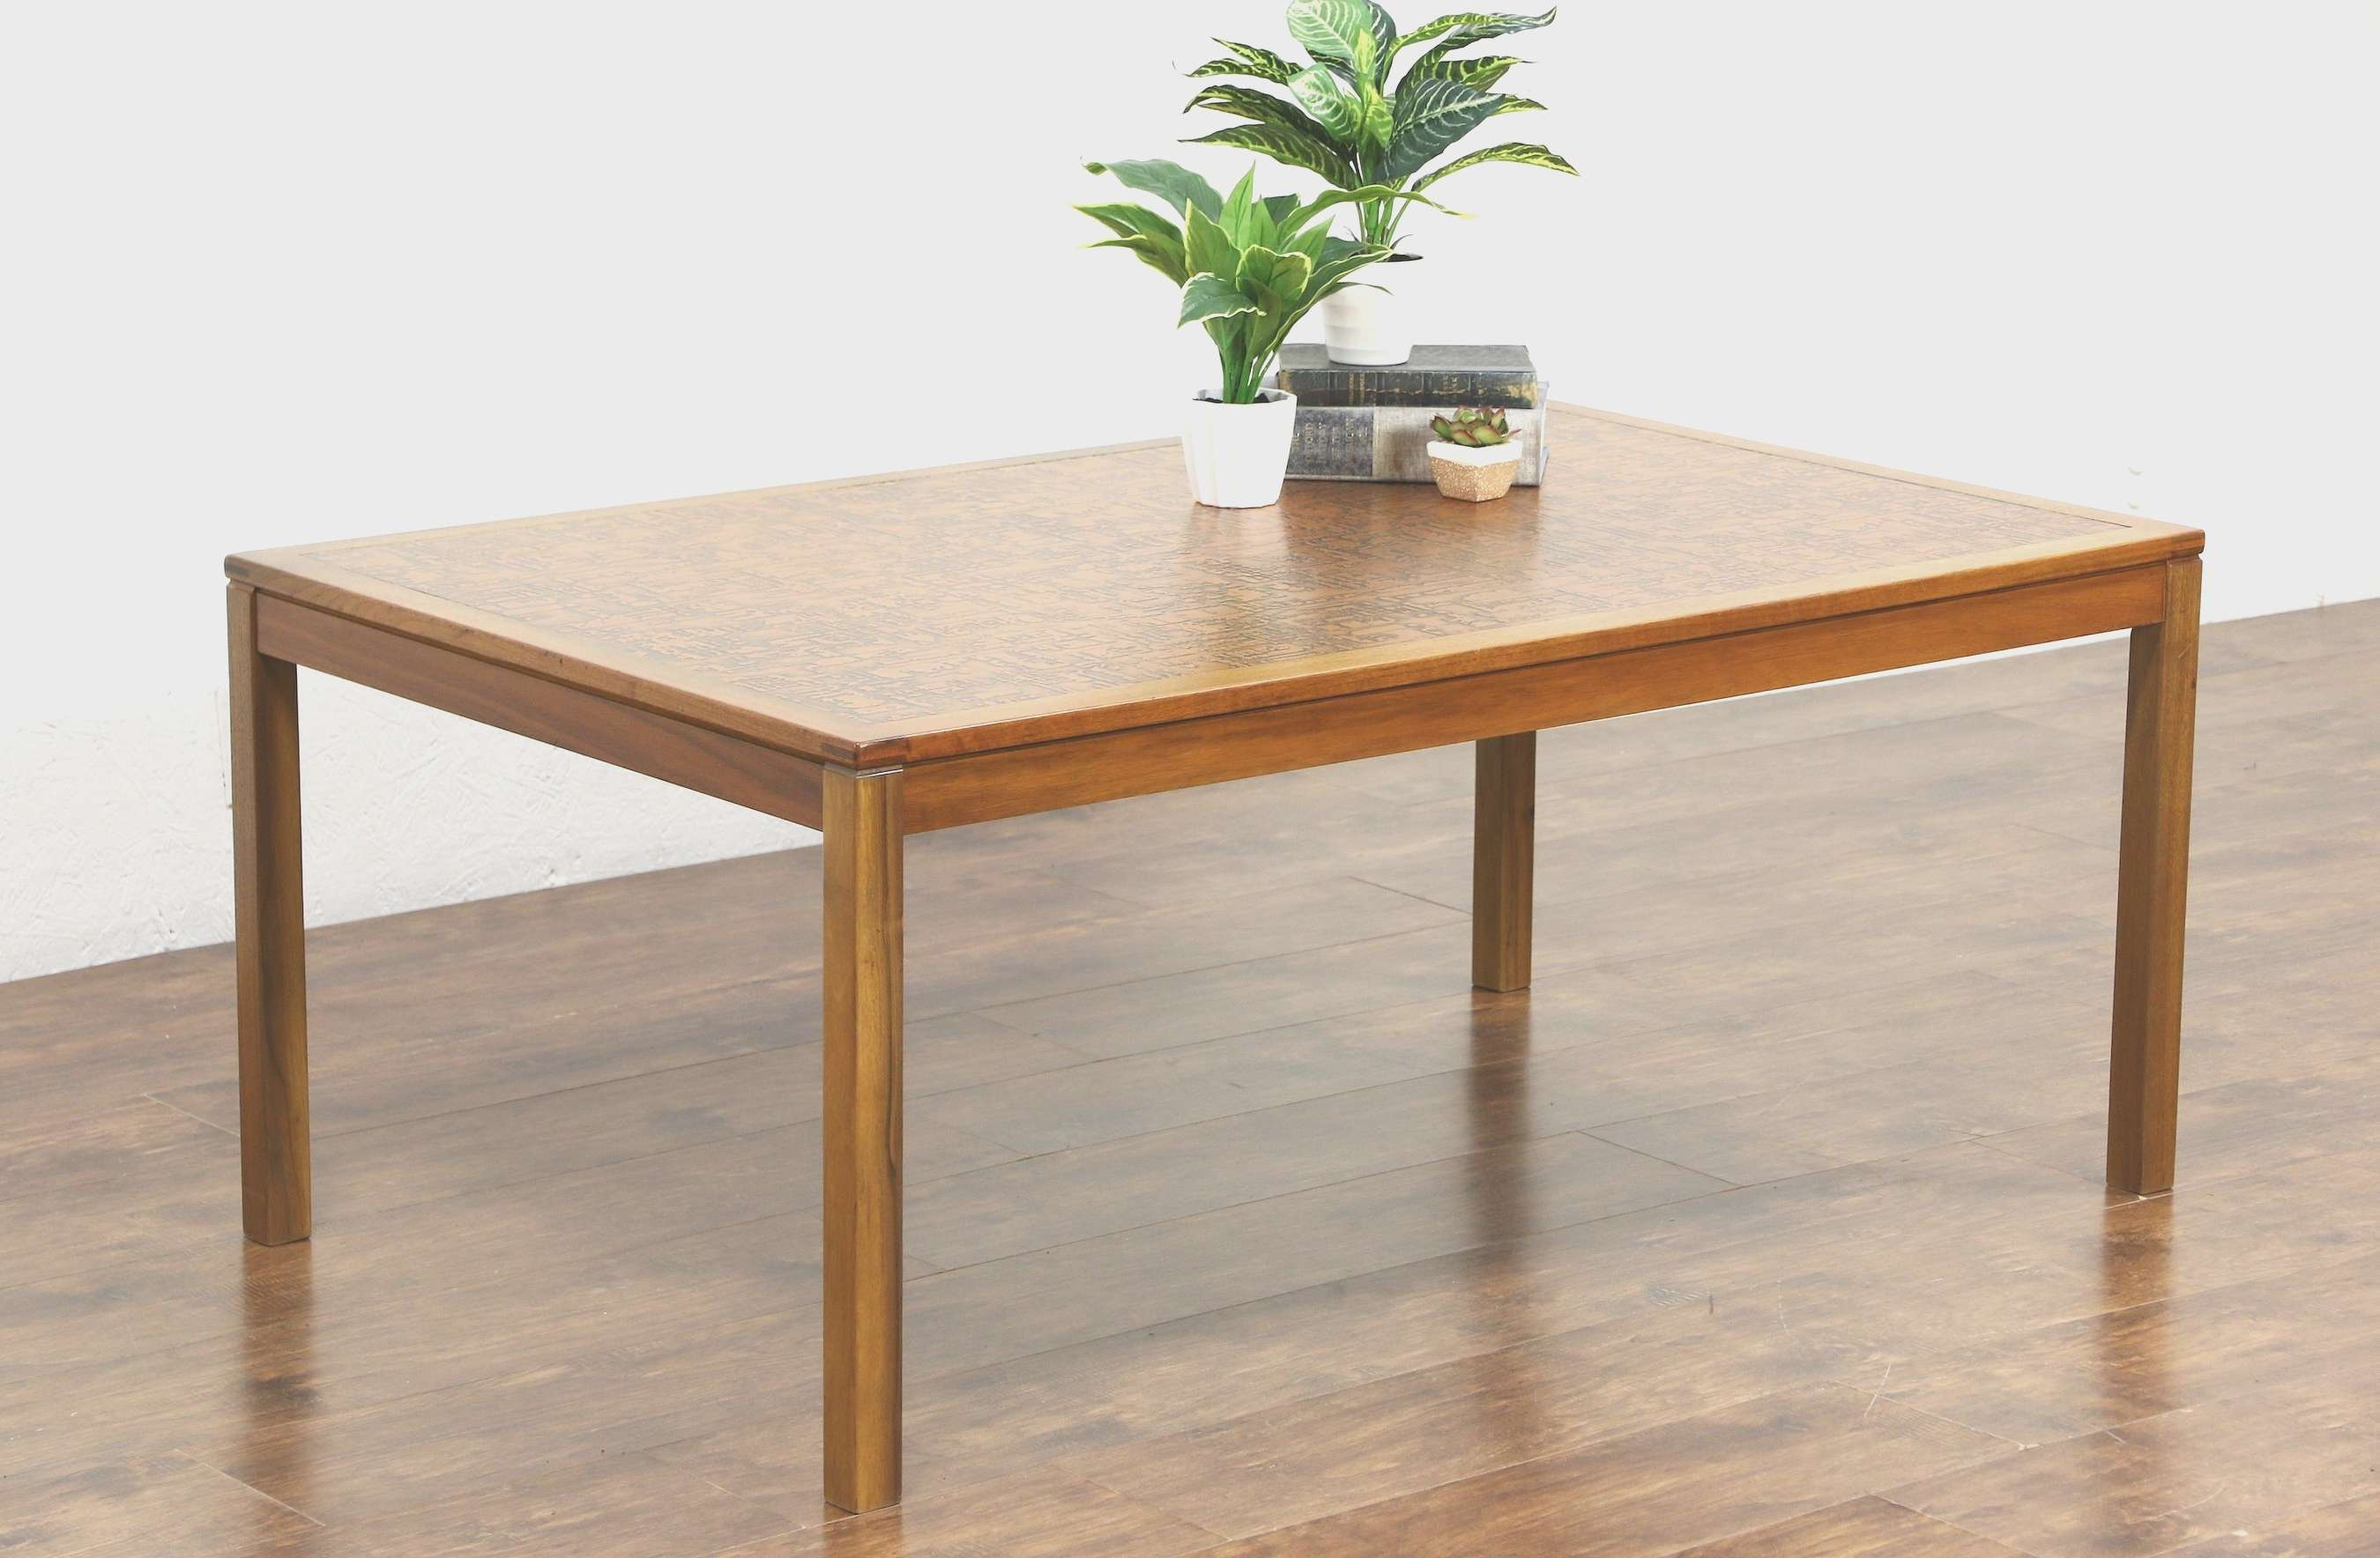 Best And Newest Retro Teak Glass Coffee Tables For Coffe Table : Creative Retro Teak Coffee Table Home Design Awesome (View 9 of 20)